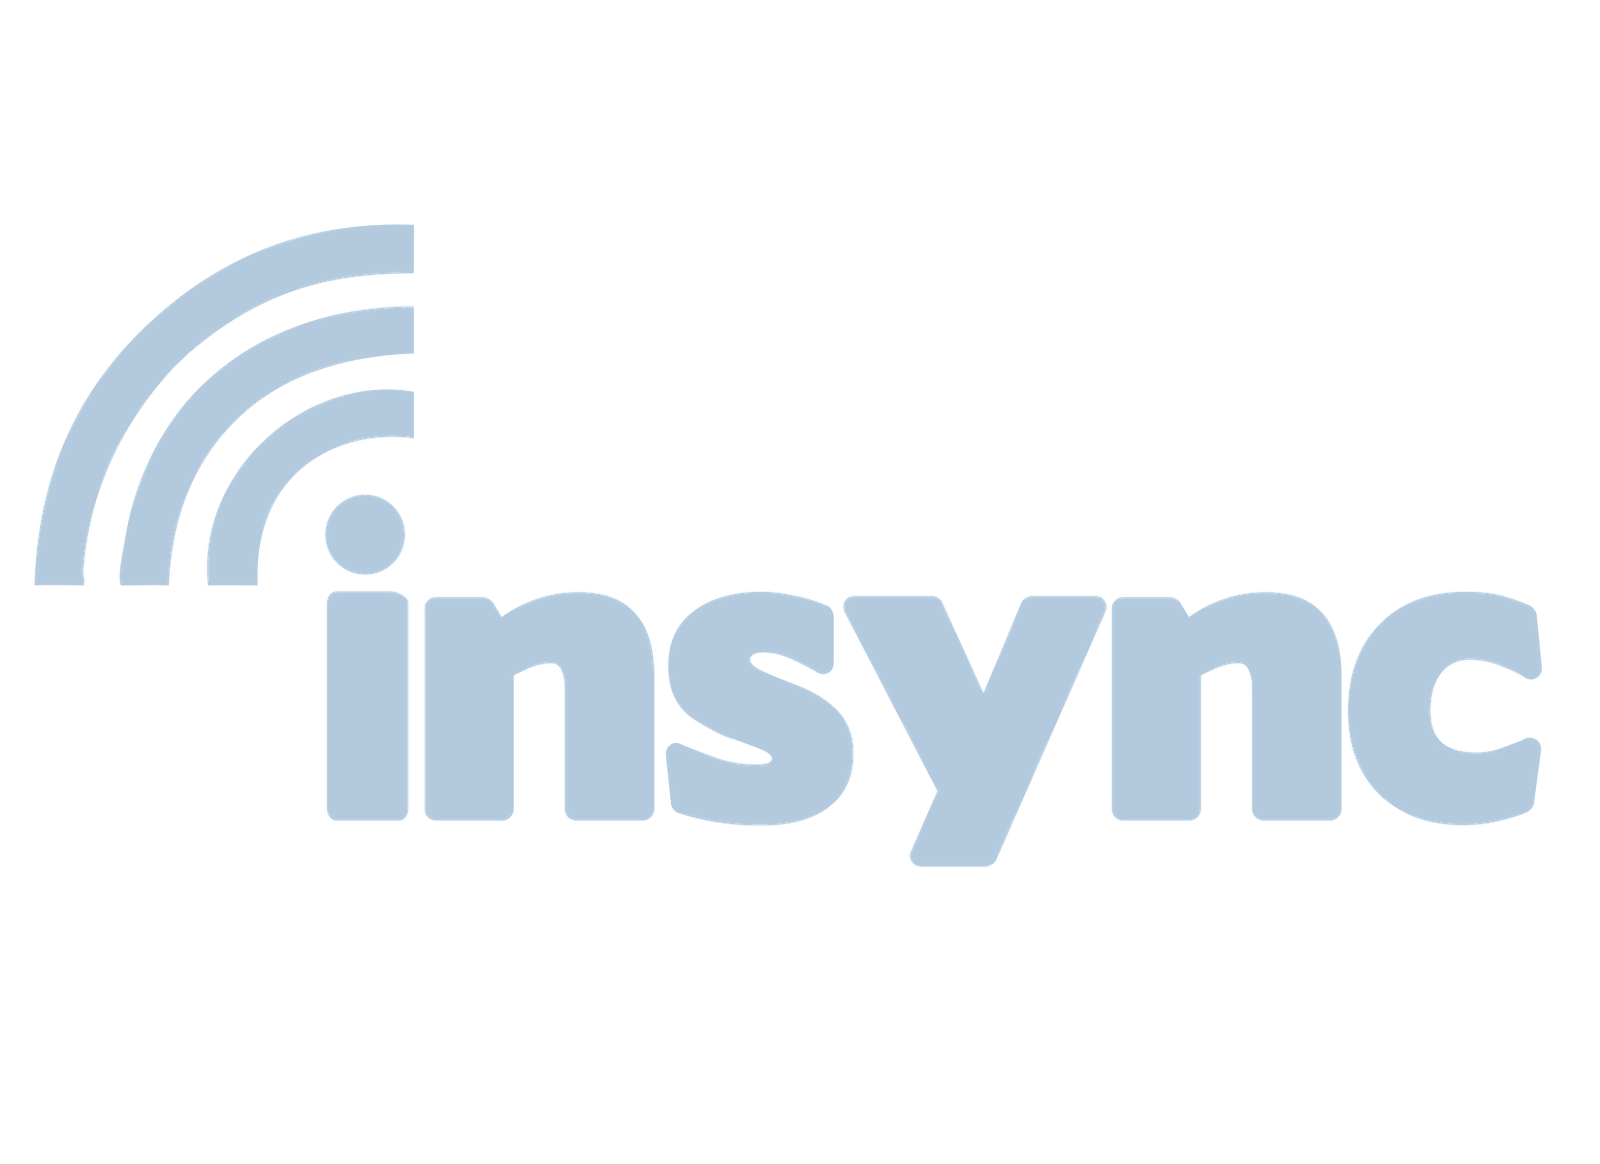 How to install Insync - Google Drive Client on Ubuntu 16 04